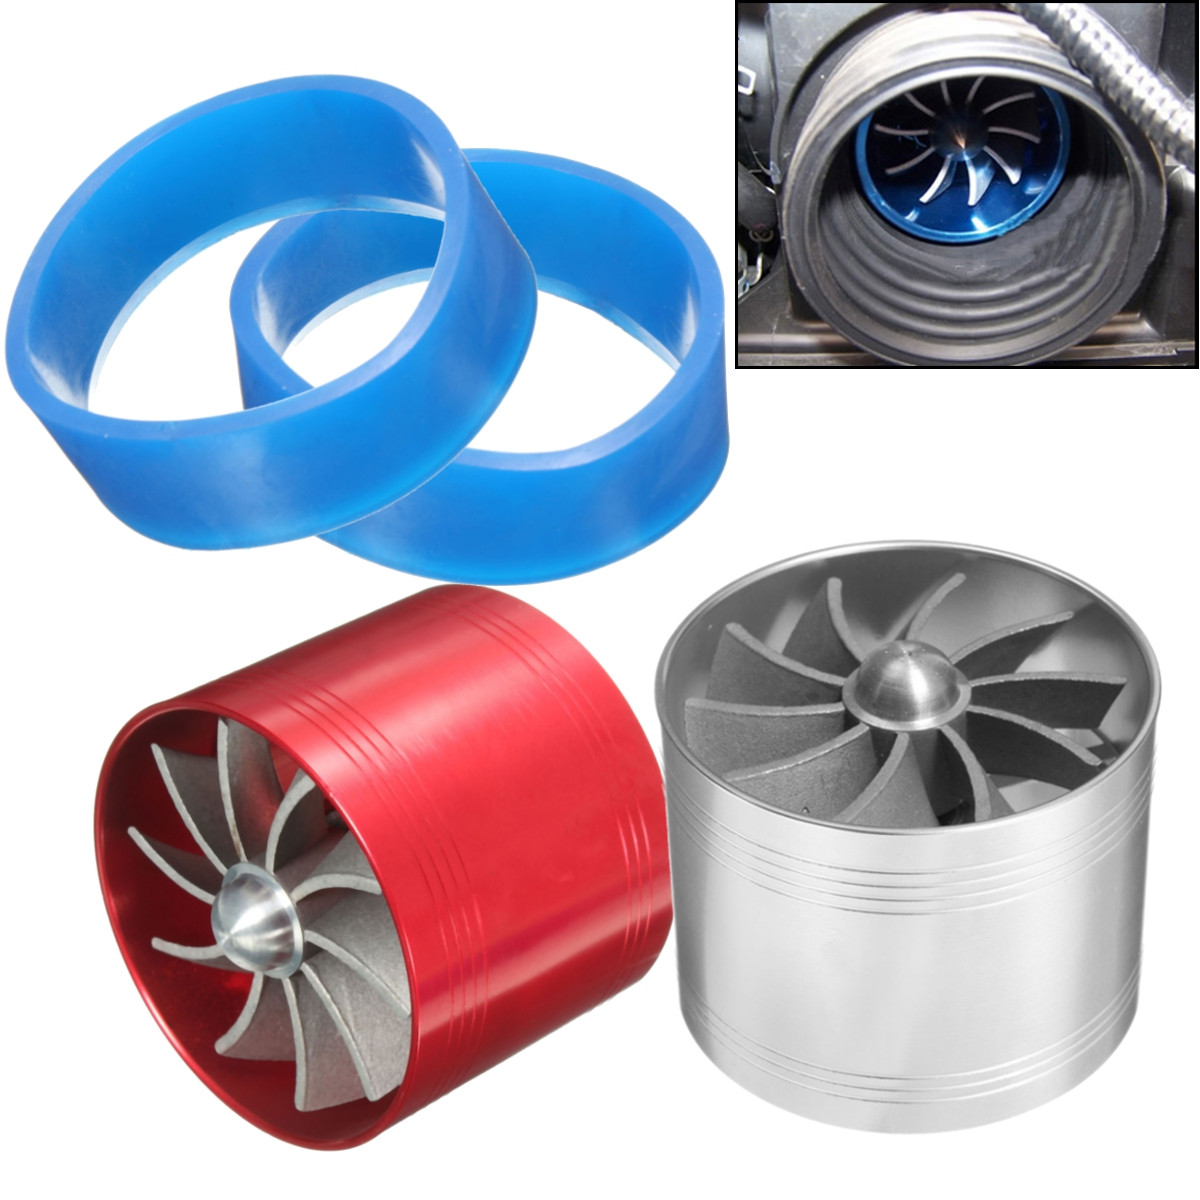 New Double Turbine Turbo Air Intake Gas Fuel Saver Fan Supercharger Deft Design